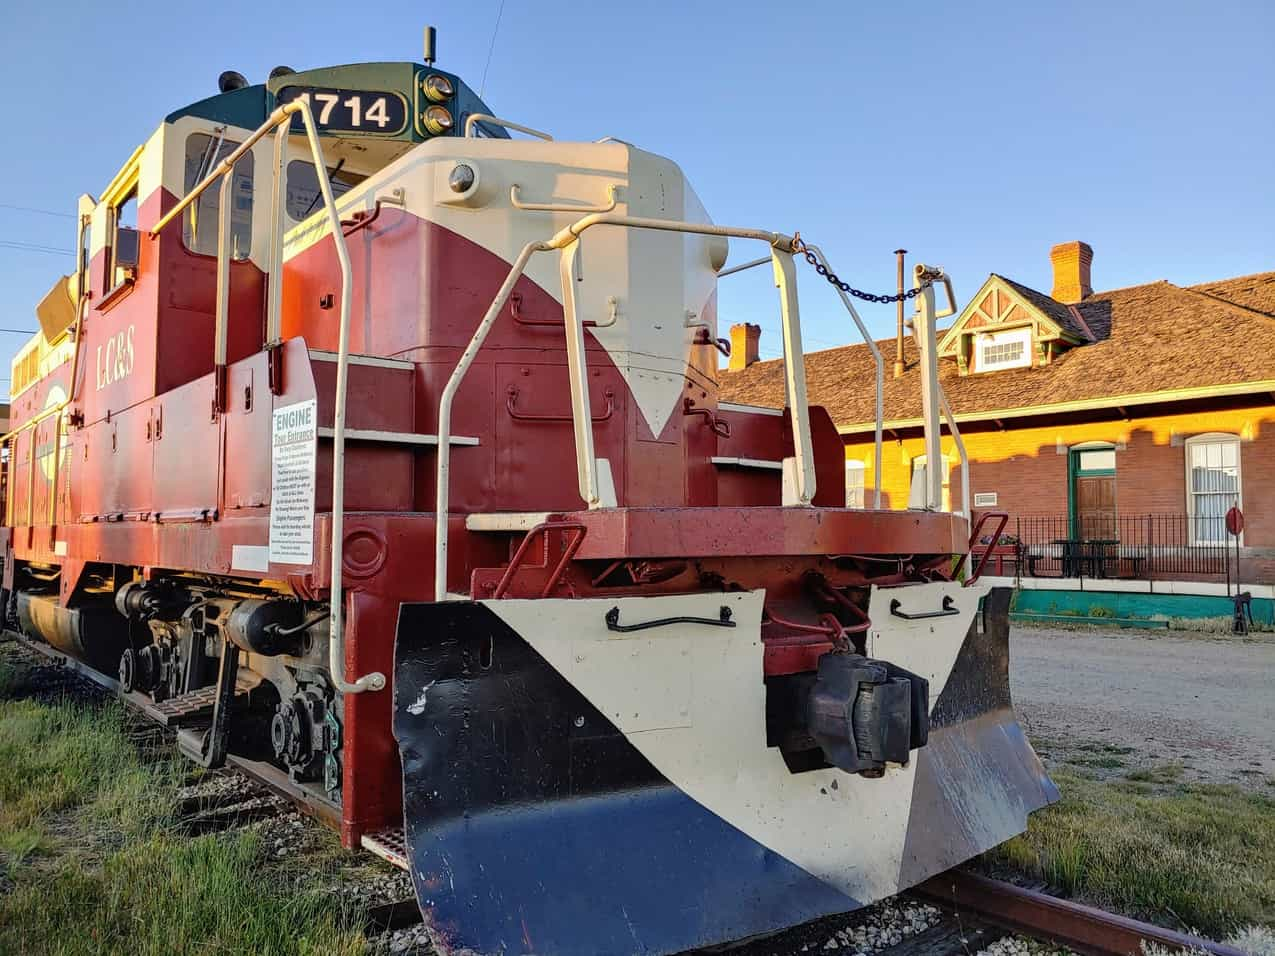 Front of a train engine on the tracks in front of the station in Leadville, Colorado